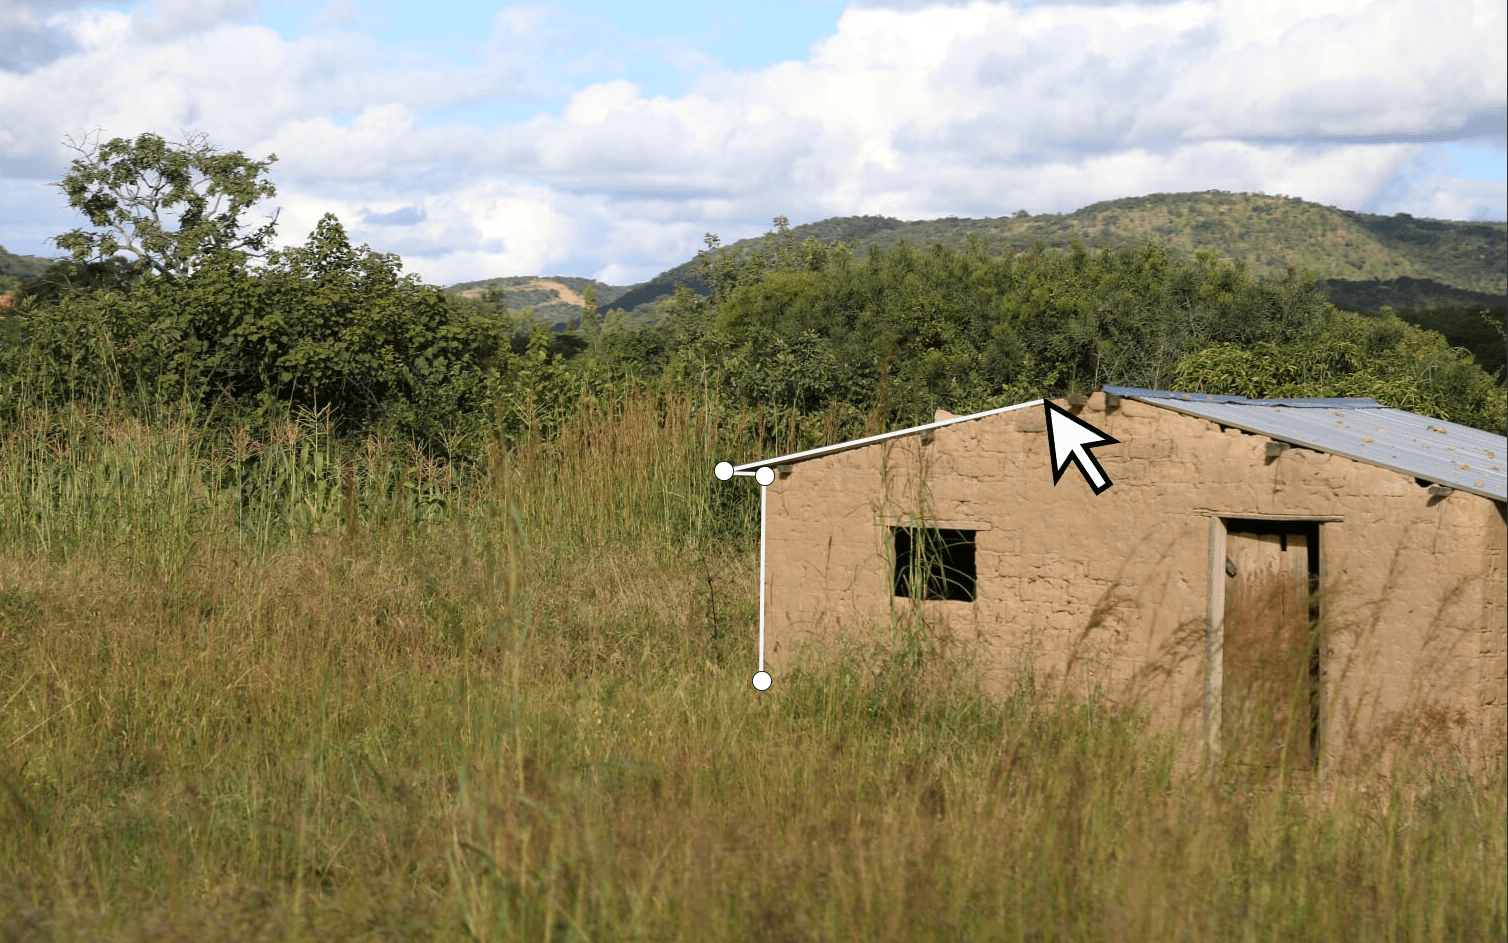 Rural structure, Southern Province, Zambia